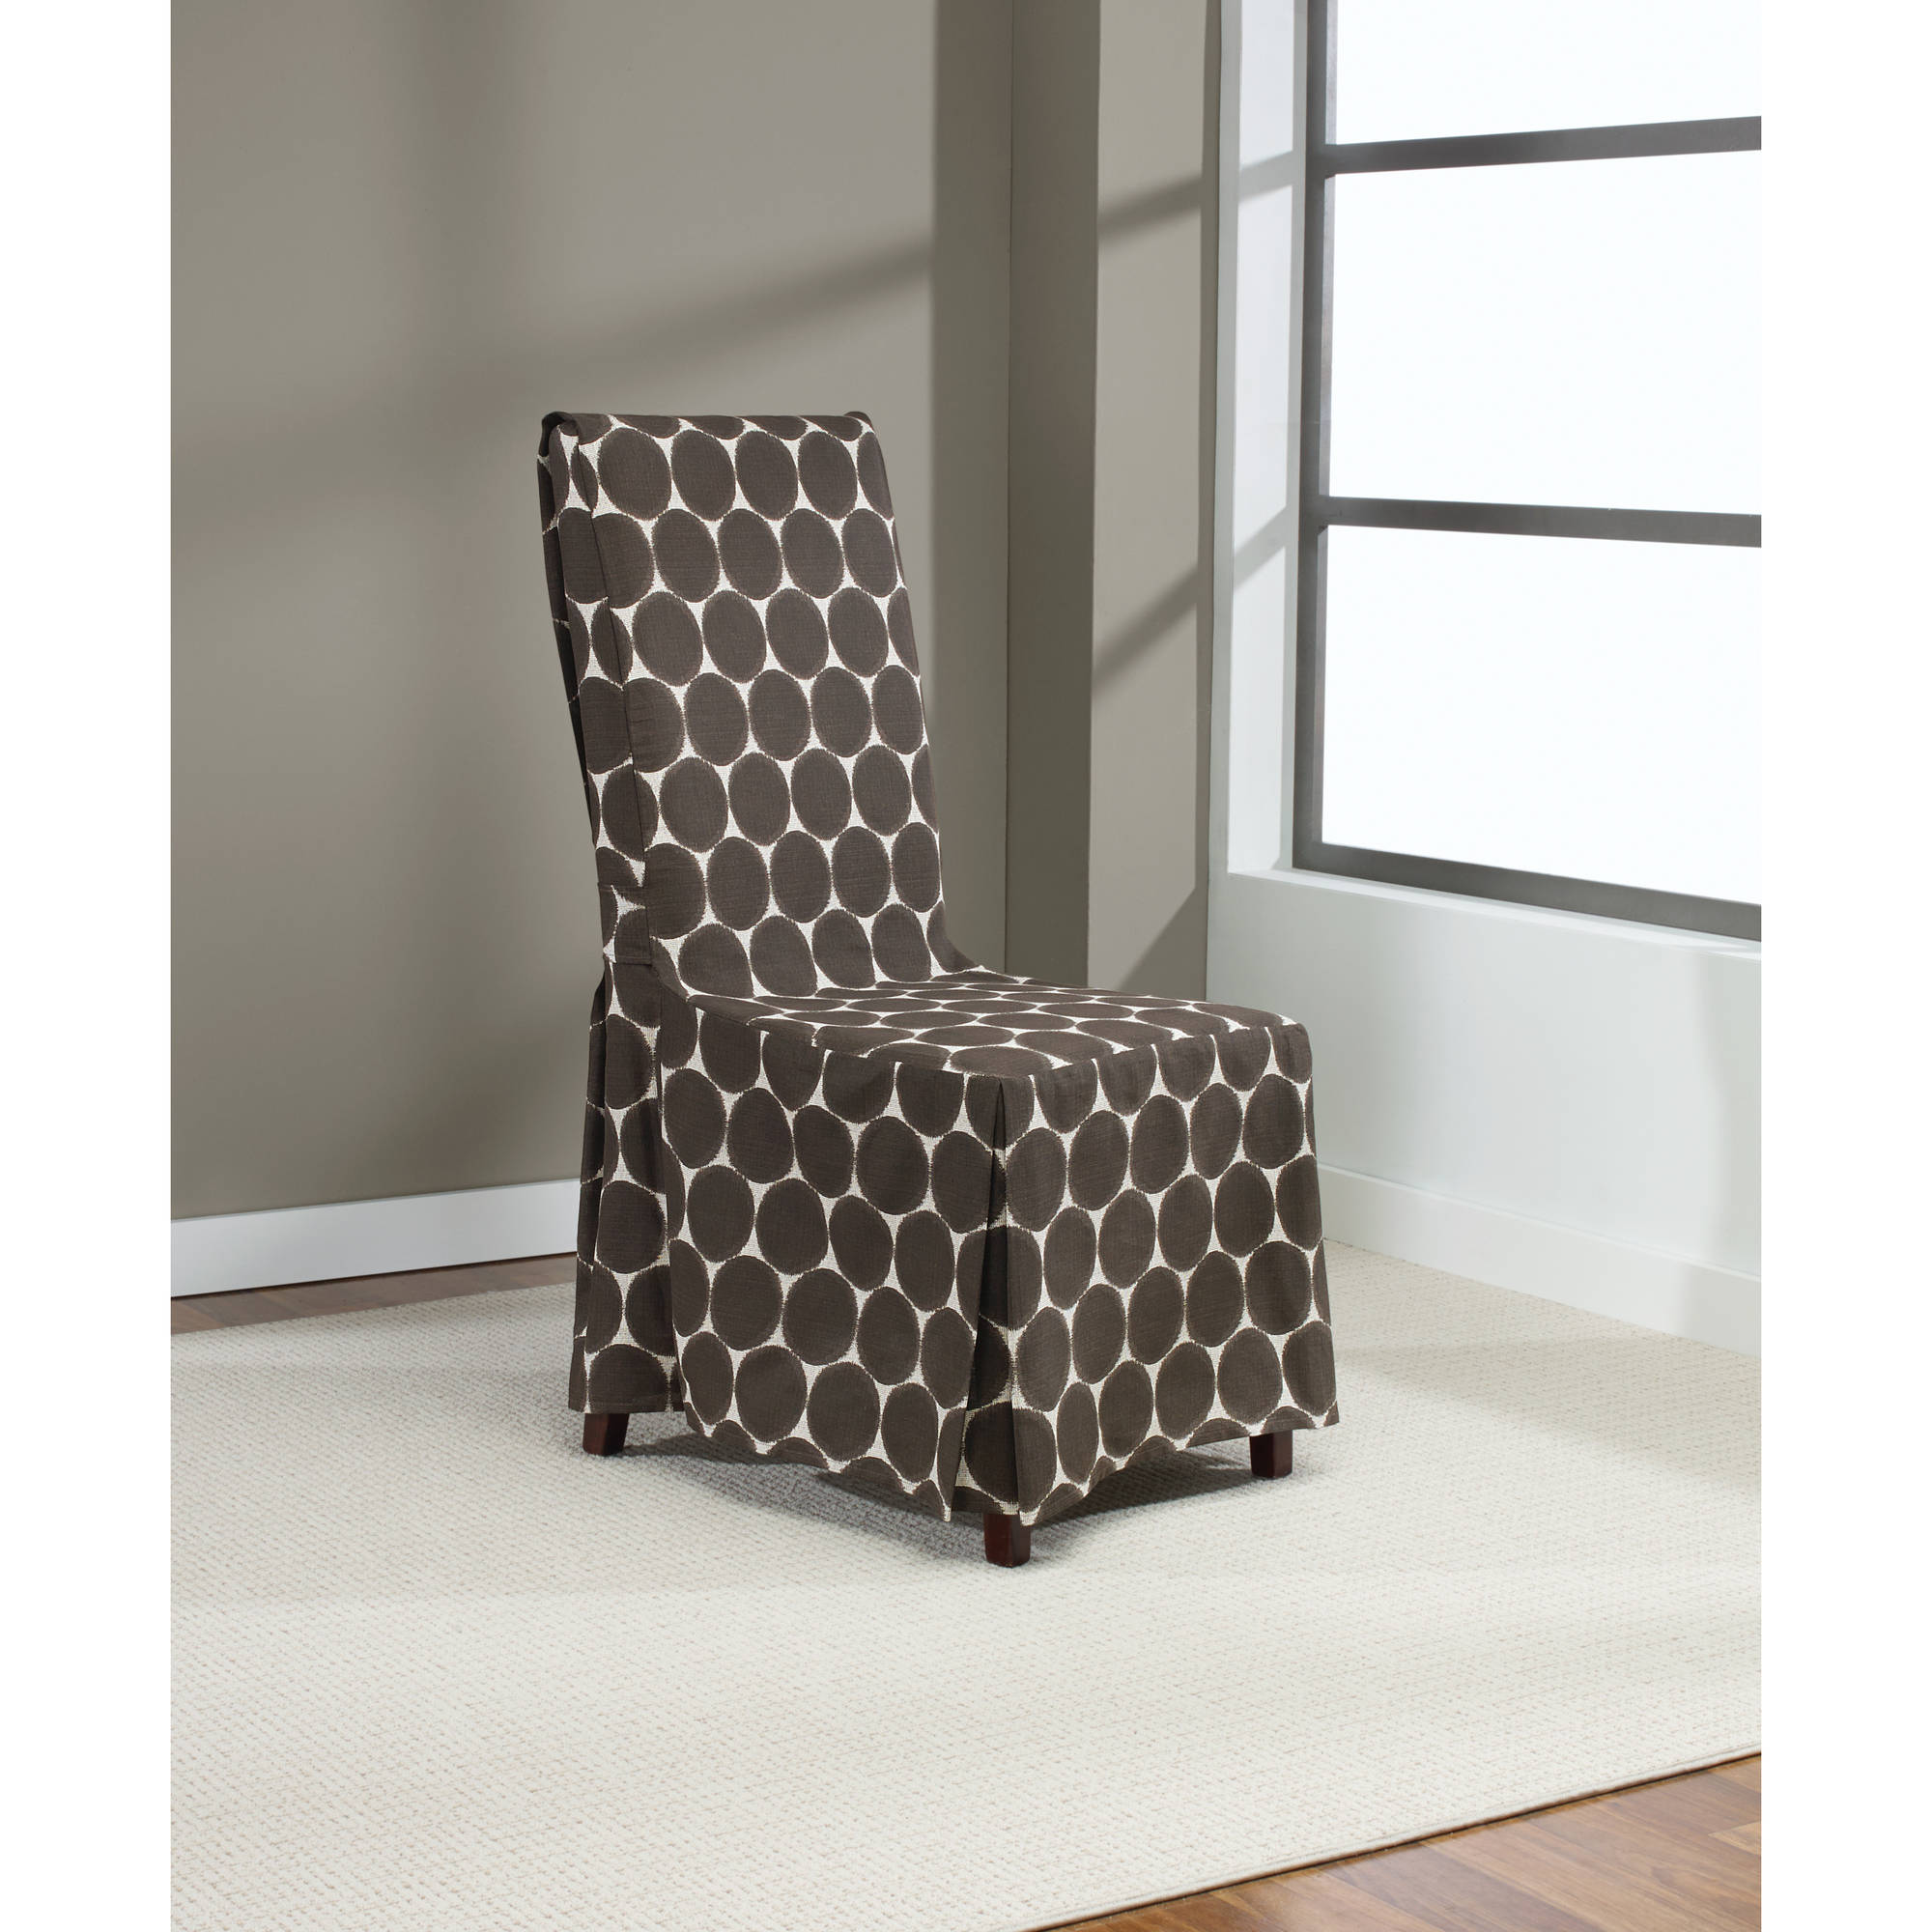 Sure Fit Ikat Dot Dining Room Chair Cover, Chocolate